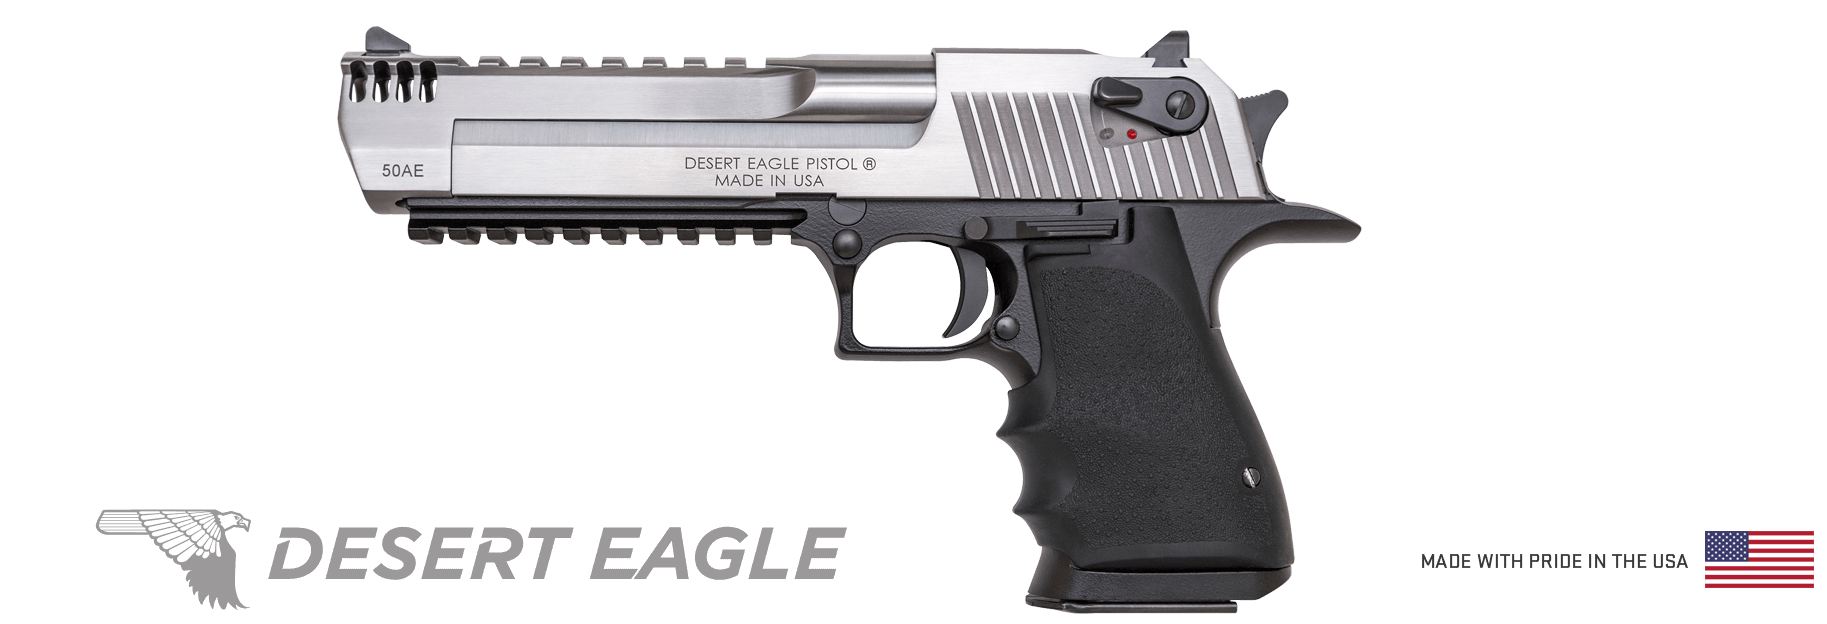 Desert eagle png. L magnum research inc